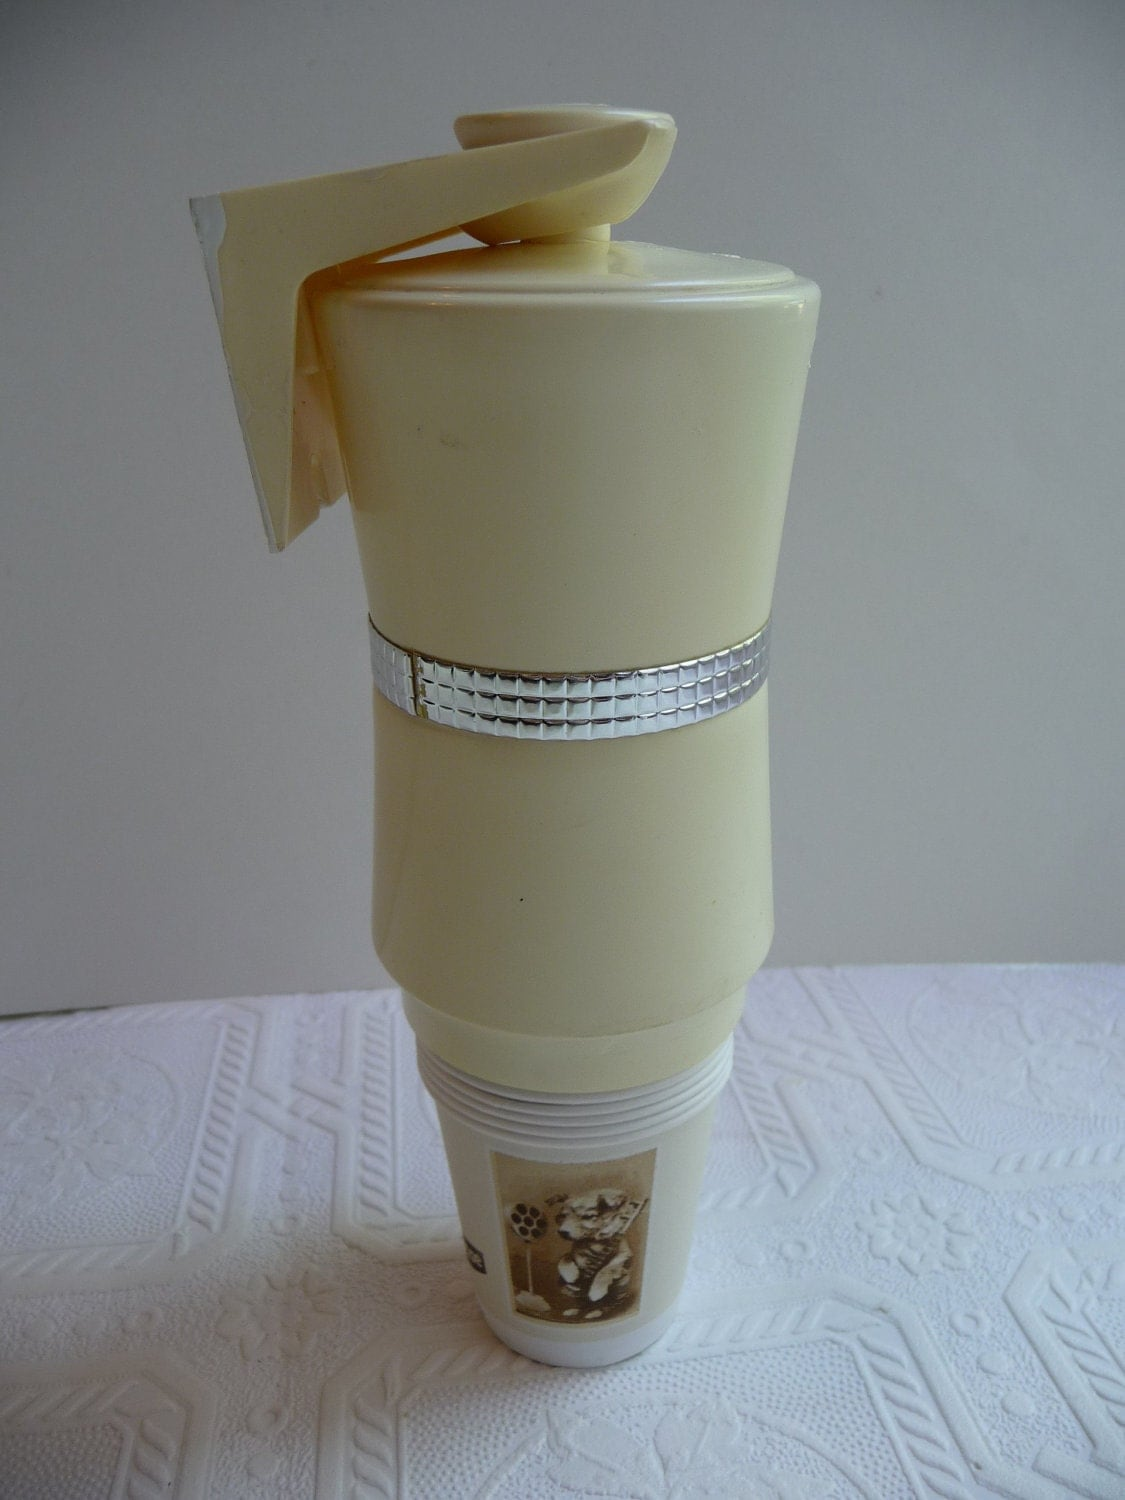 Cup Holder Dixie Cup Holder Vintage Bathroom Cup Holder